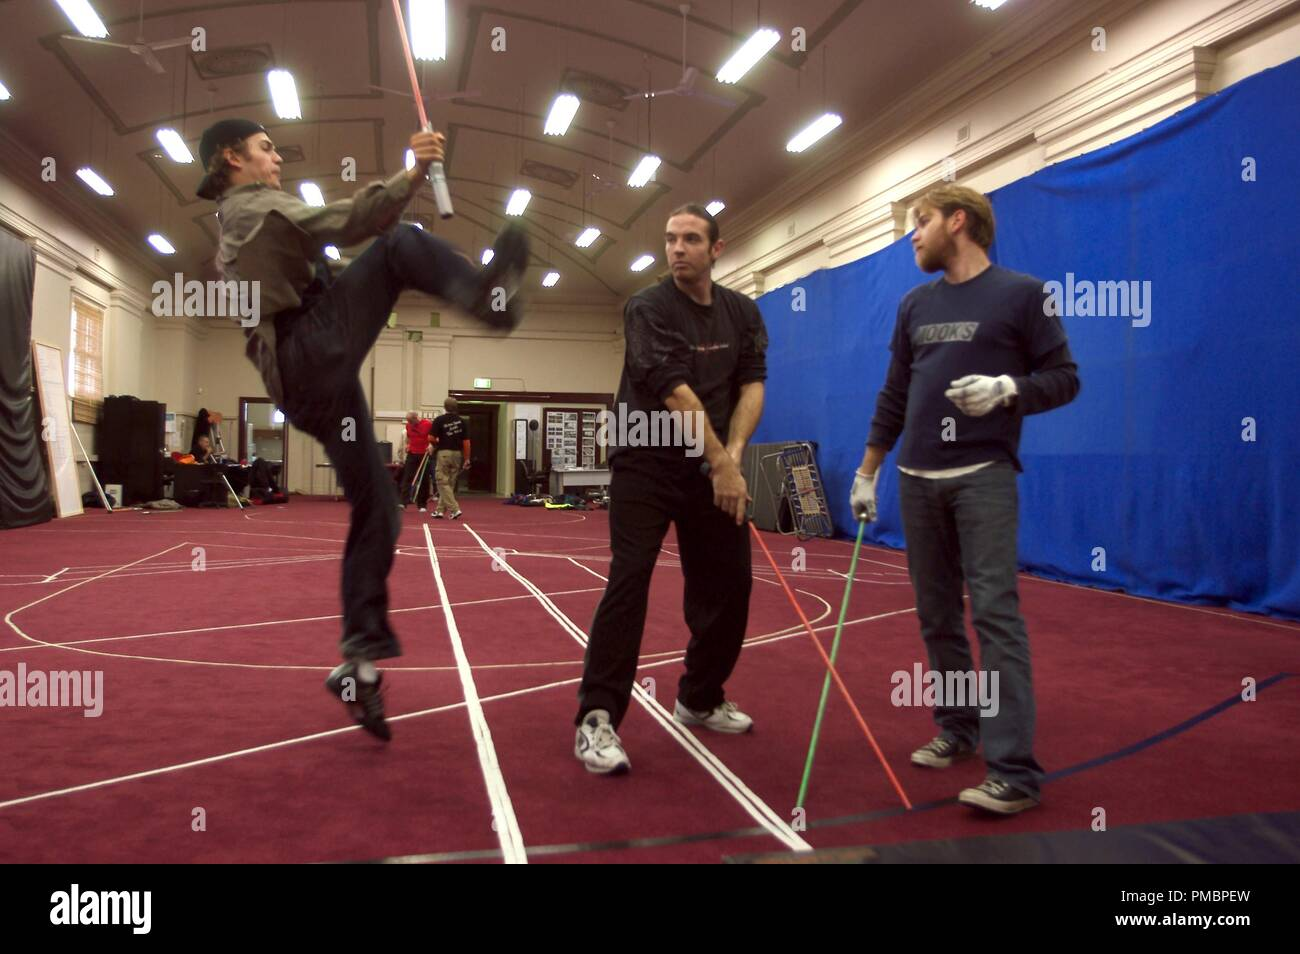 Hayden Christensen and Ewan McGregor practice choreography in 'Star Wars Episode III: Revenge of the Sith' (2005)  File Reference # 32603_473THA - Stock Image